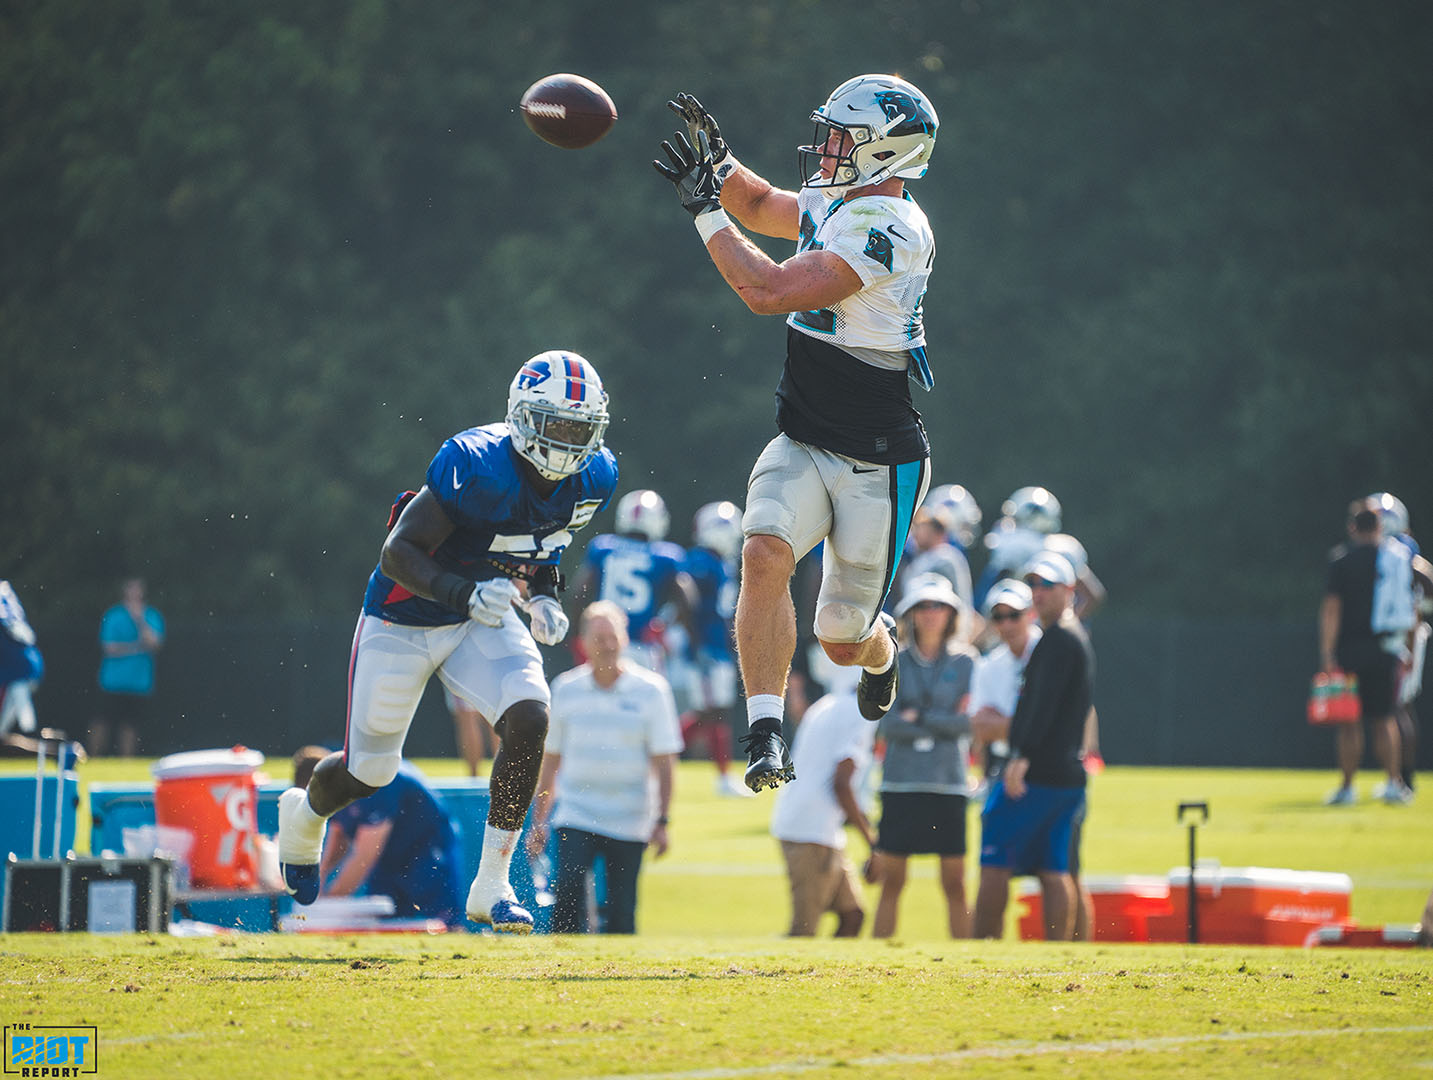 Photo Gallery: Panthers vs Bills Training Camp, Day 14